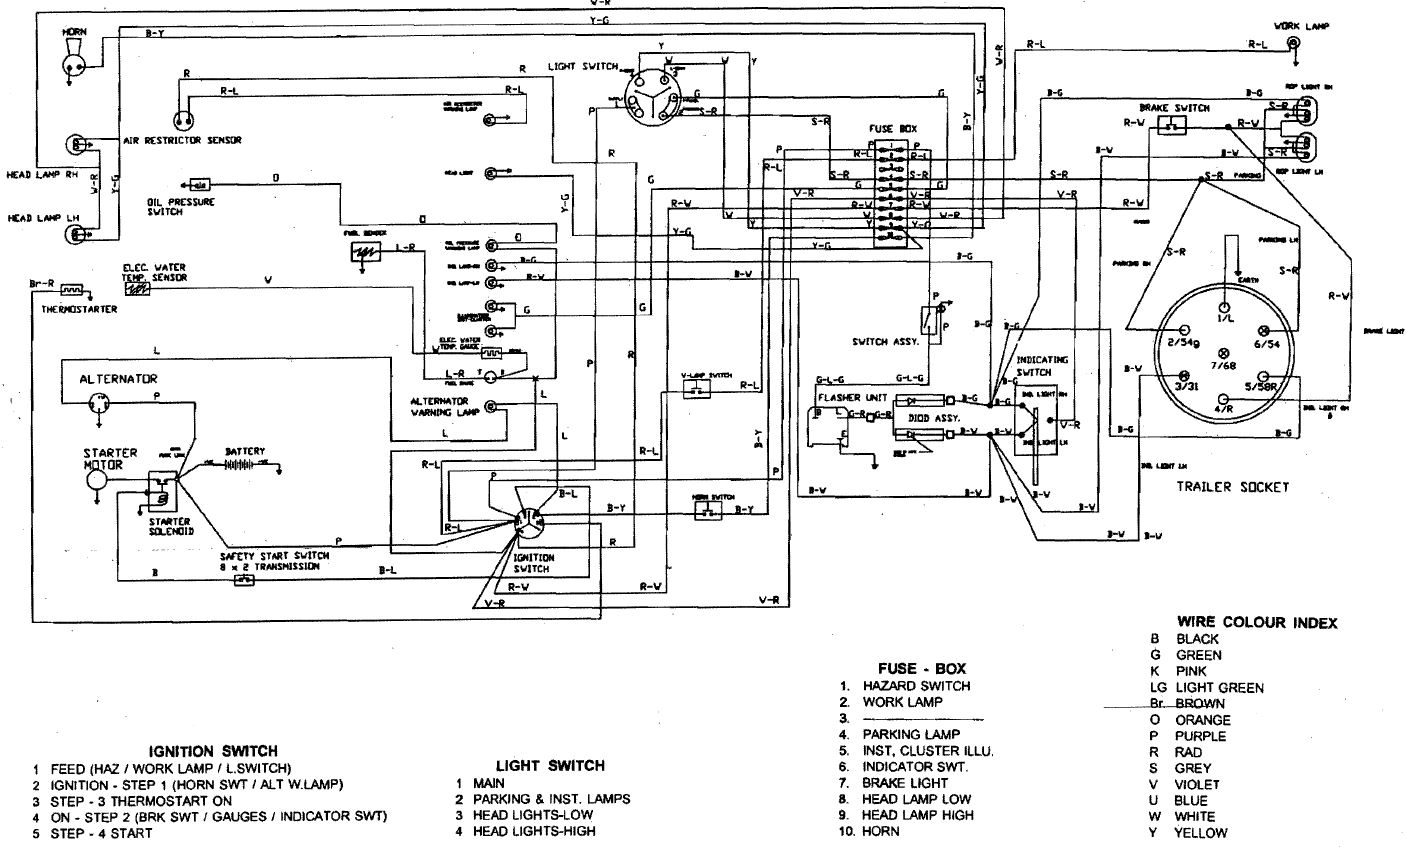 20158463319_b82d524c3d_o ignition switch wiring diagram wiring diagram for ignition switch at soozxer.org